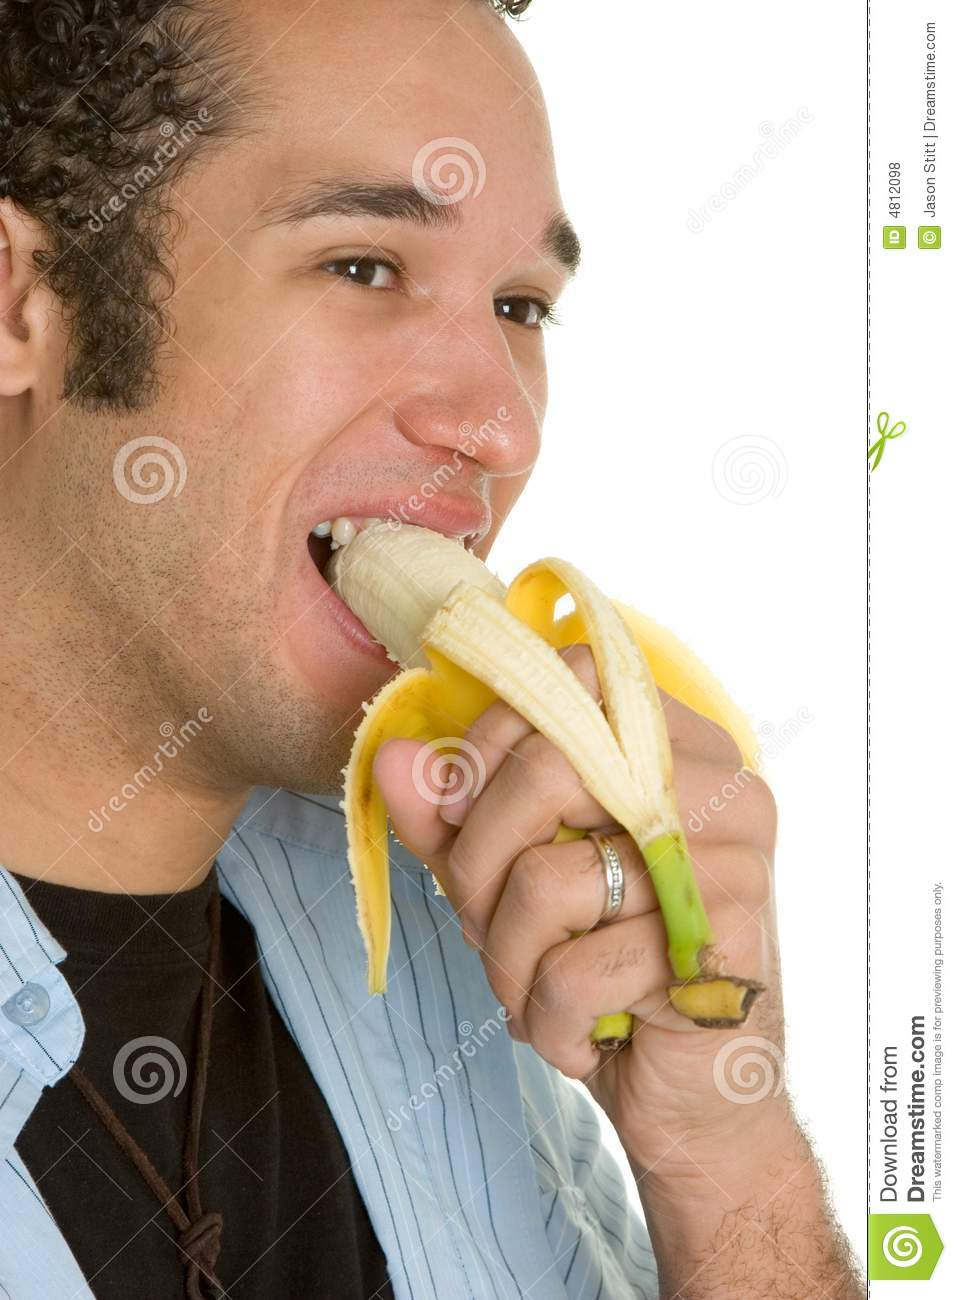 Man Eating Banana Royalty Free Stock Photos - Image: 4812098